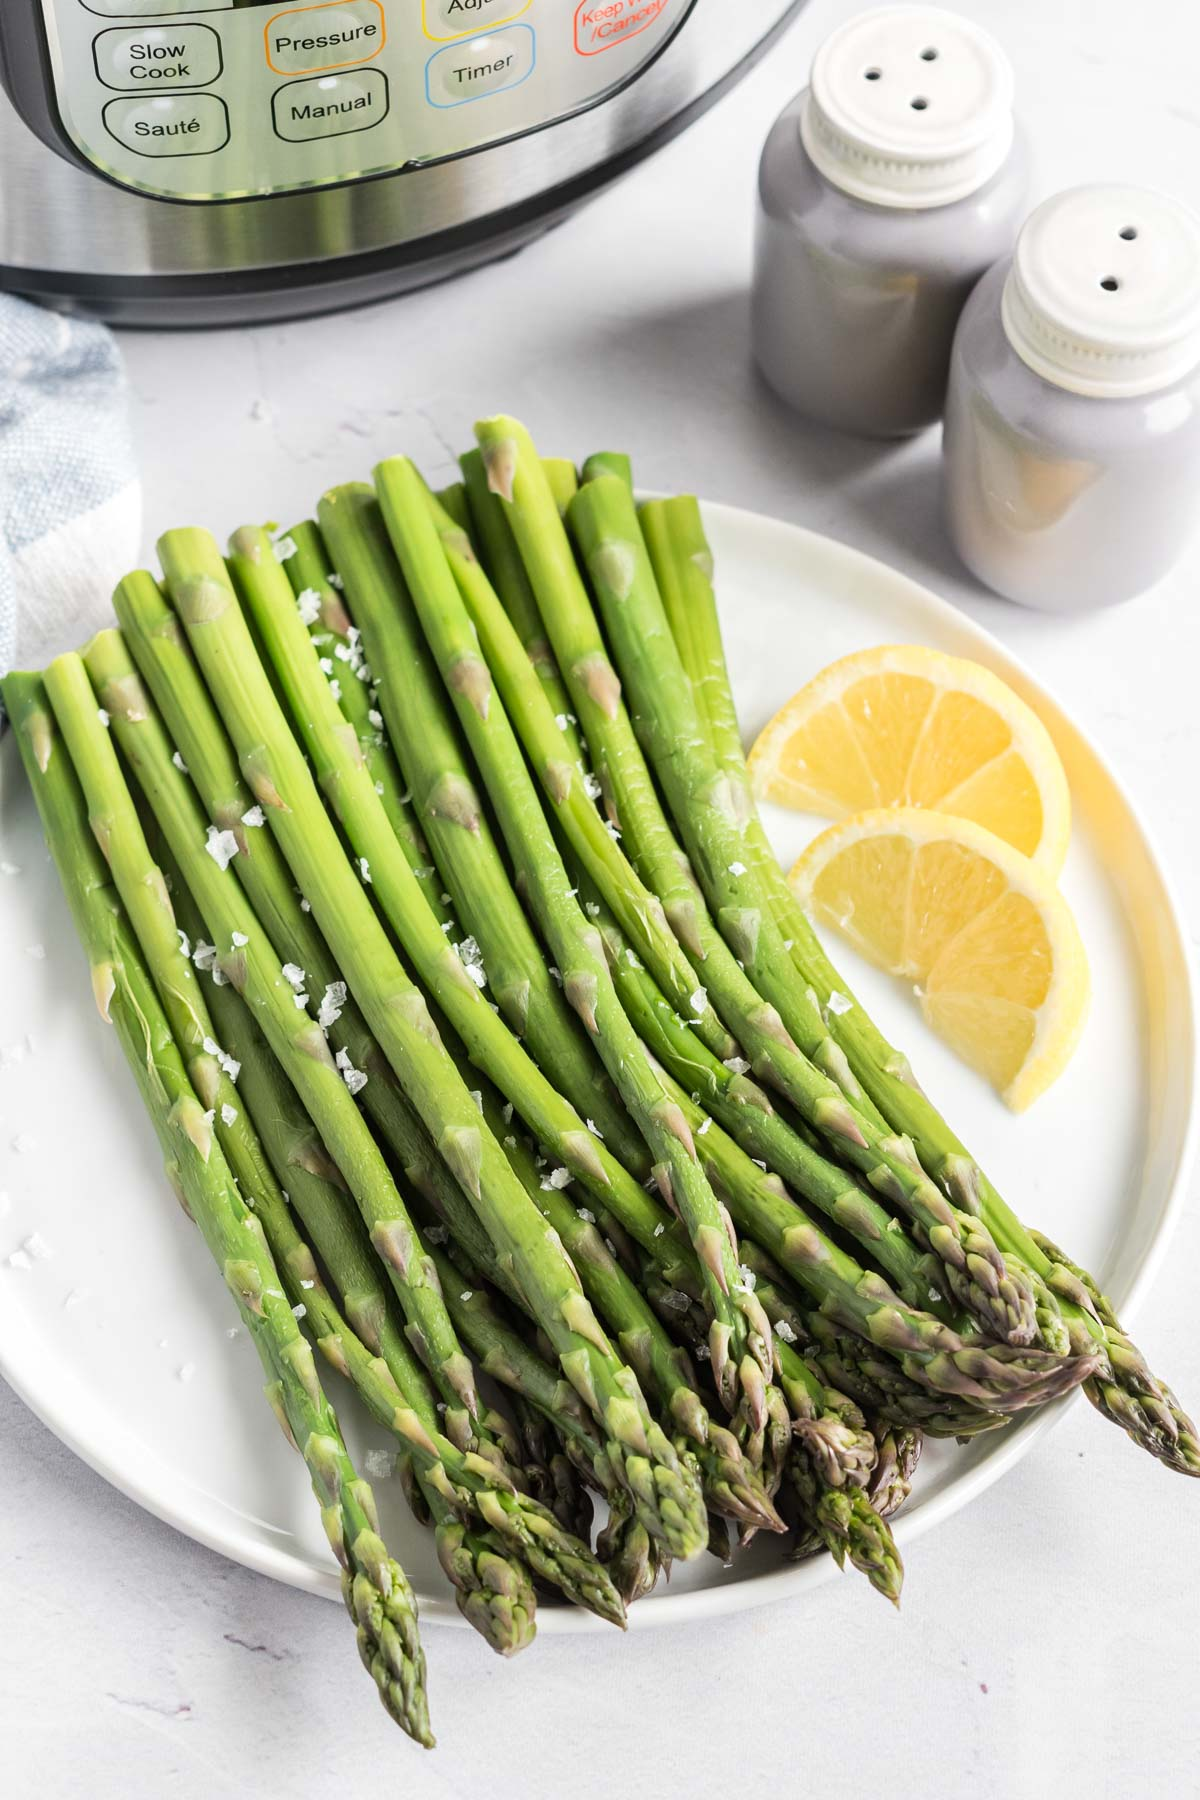 Asparagus on a plate with lemon wedges.  An instant pot and salt and pepper shakers in the background.